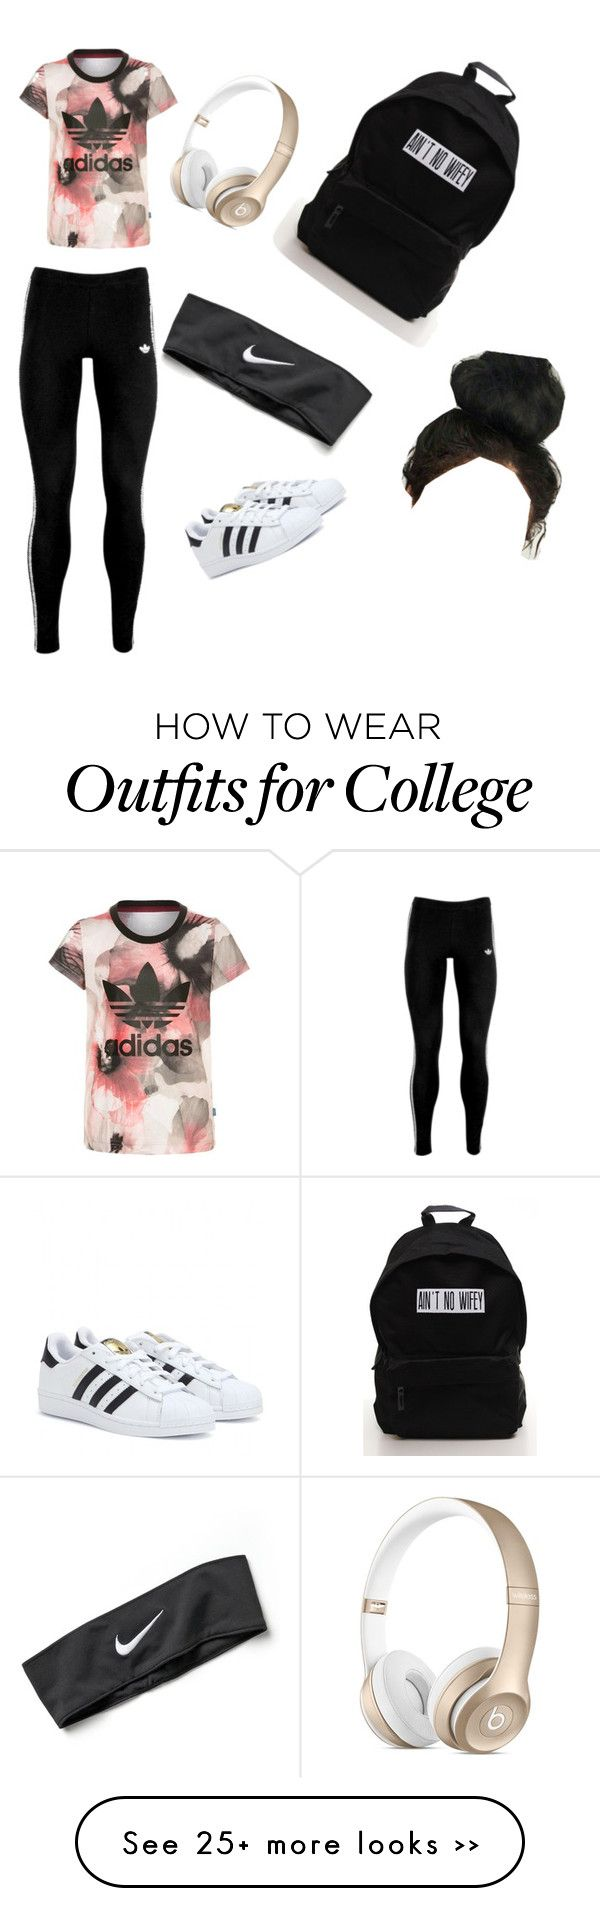 """Untitled #1"" by sunnygraceemmy on Polyvore featuring adidas Originals, adidas…"